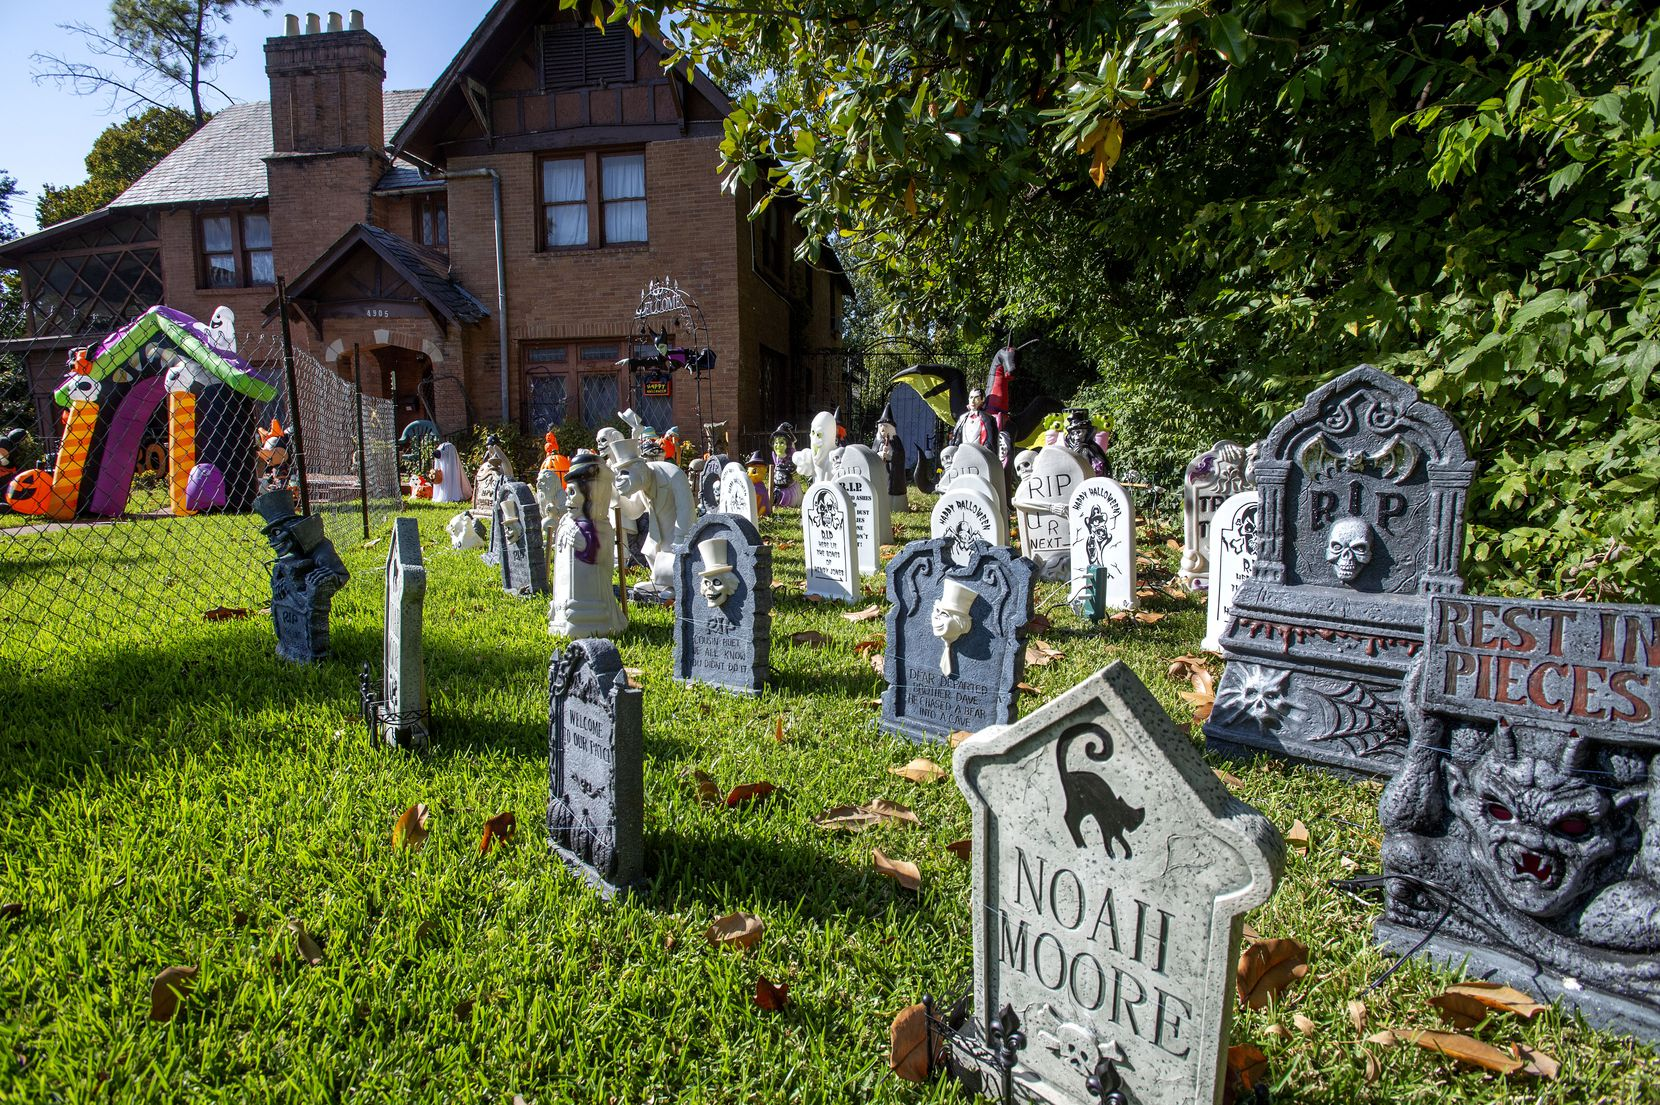 On a typical year, thousands of children flock to Swiss Avenue to trick-or-treat. This year, residents have decided to shut that tradition down. Decorations, though, are still encouraged.